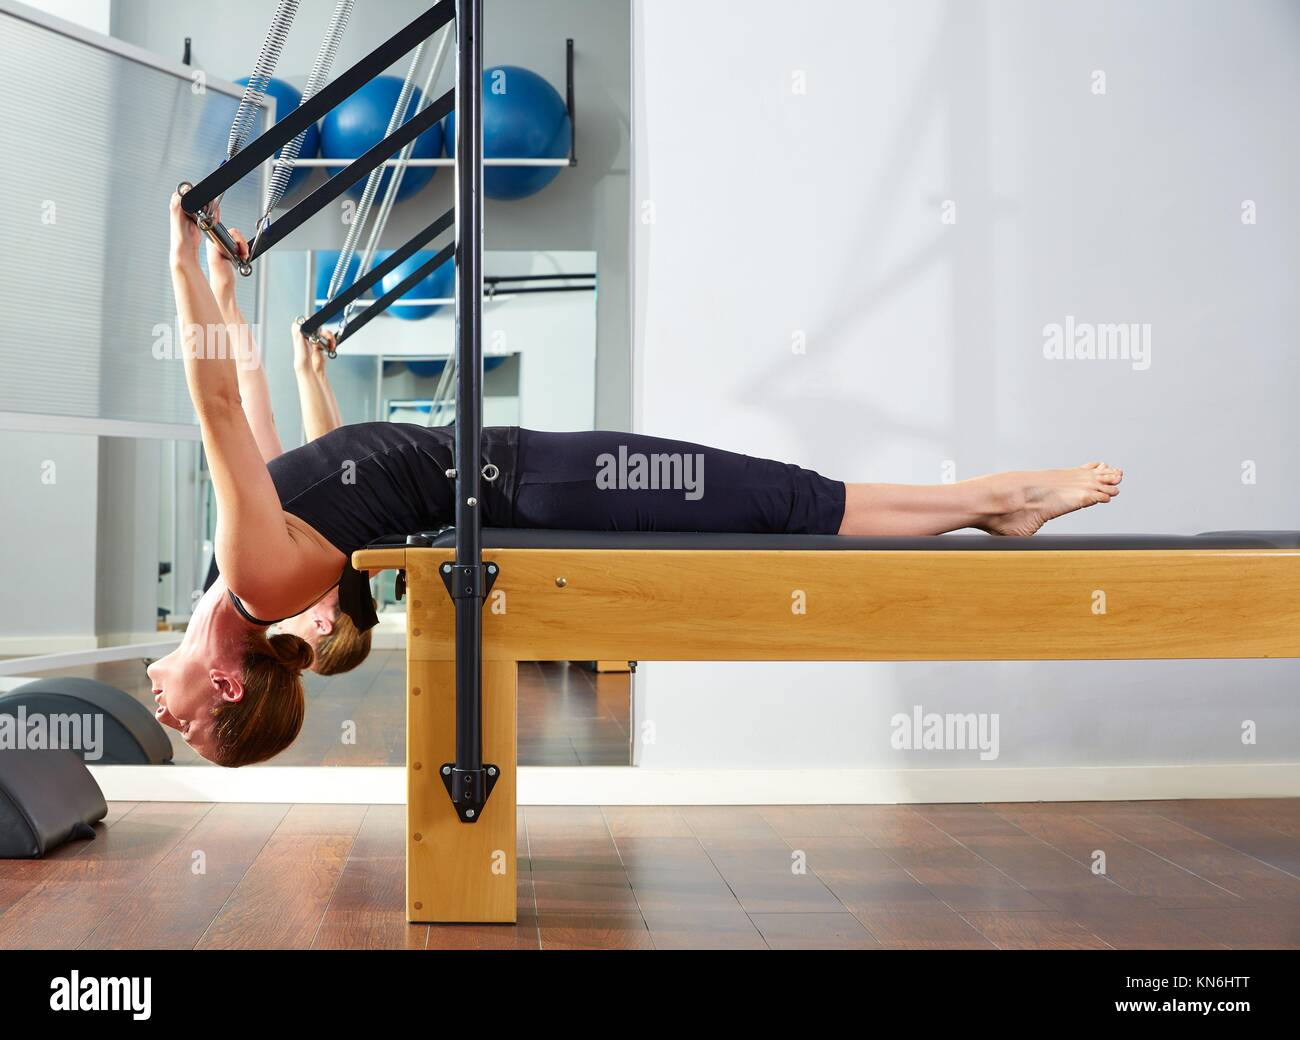 Pilates woman in reformer exercise at gym indoor. - Stock Image